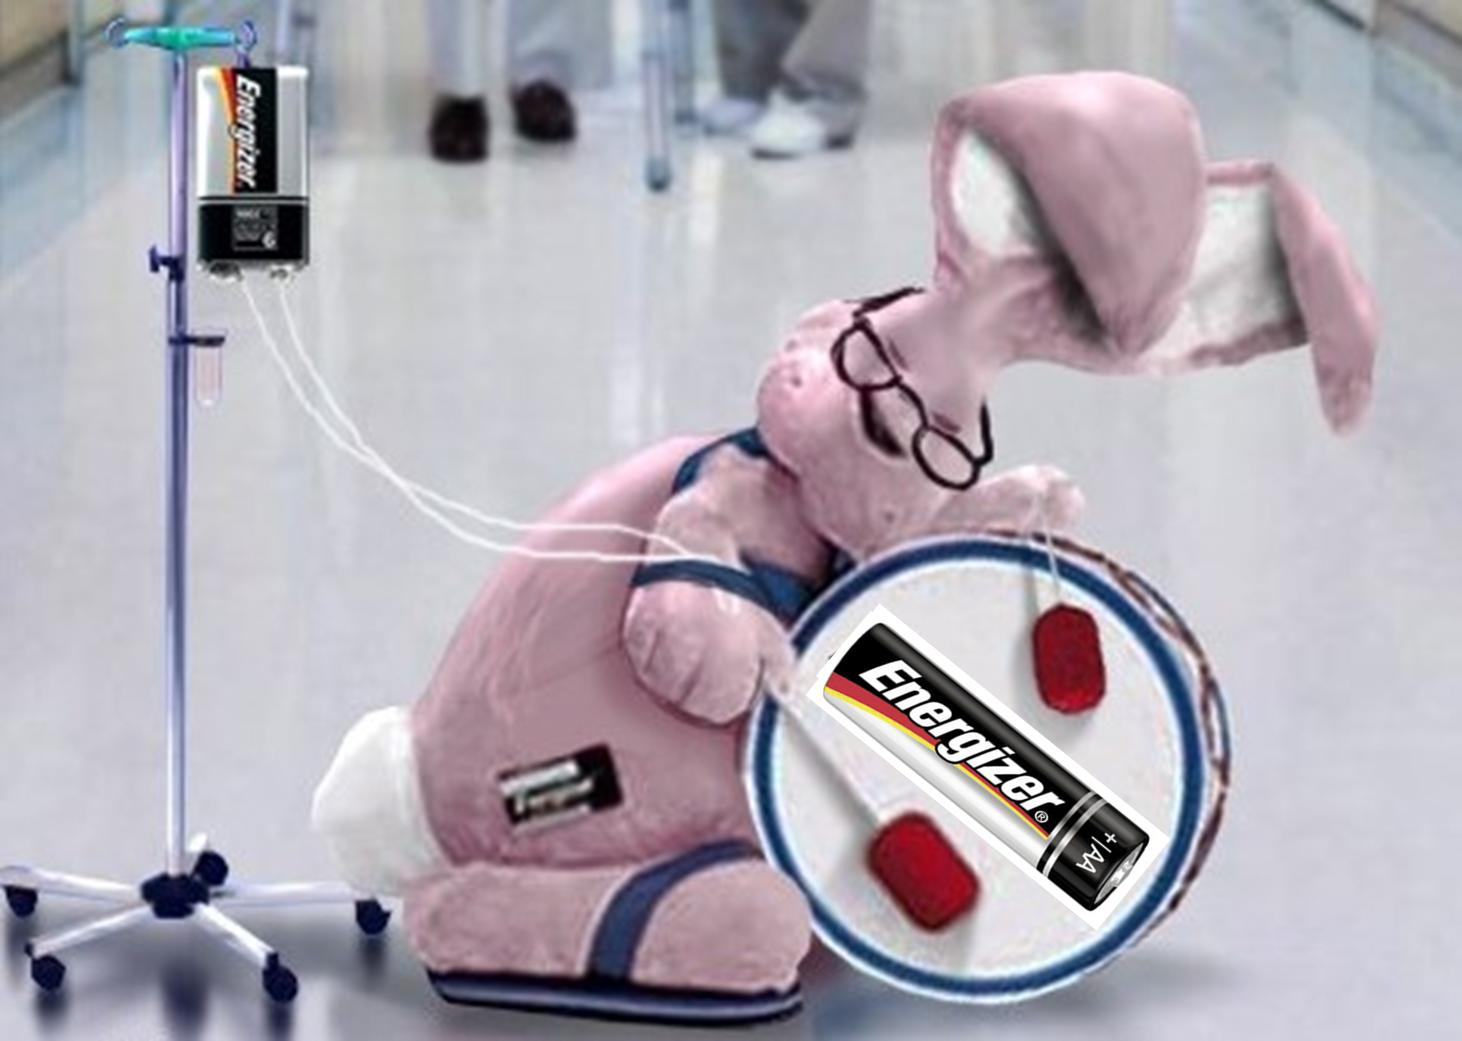 Lyme's impact on the Energizer Bunny